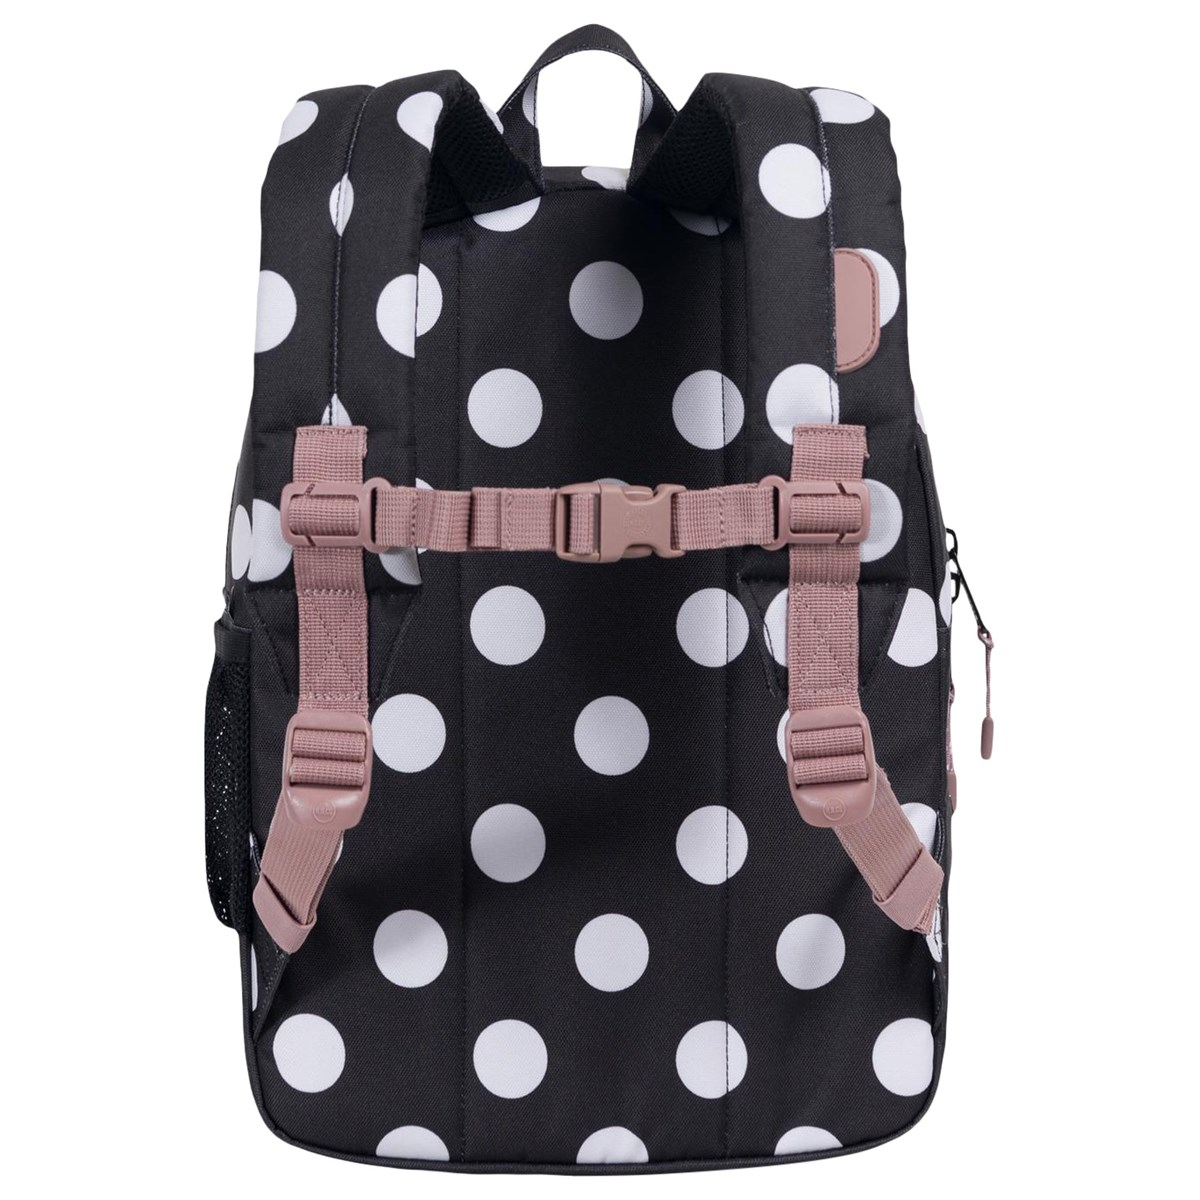 c1e07bd7faa8 Herschel Supply Co Black Polka Dot And Ash Rose Heritage Youth Backpack